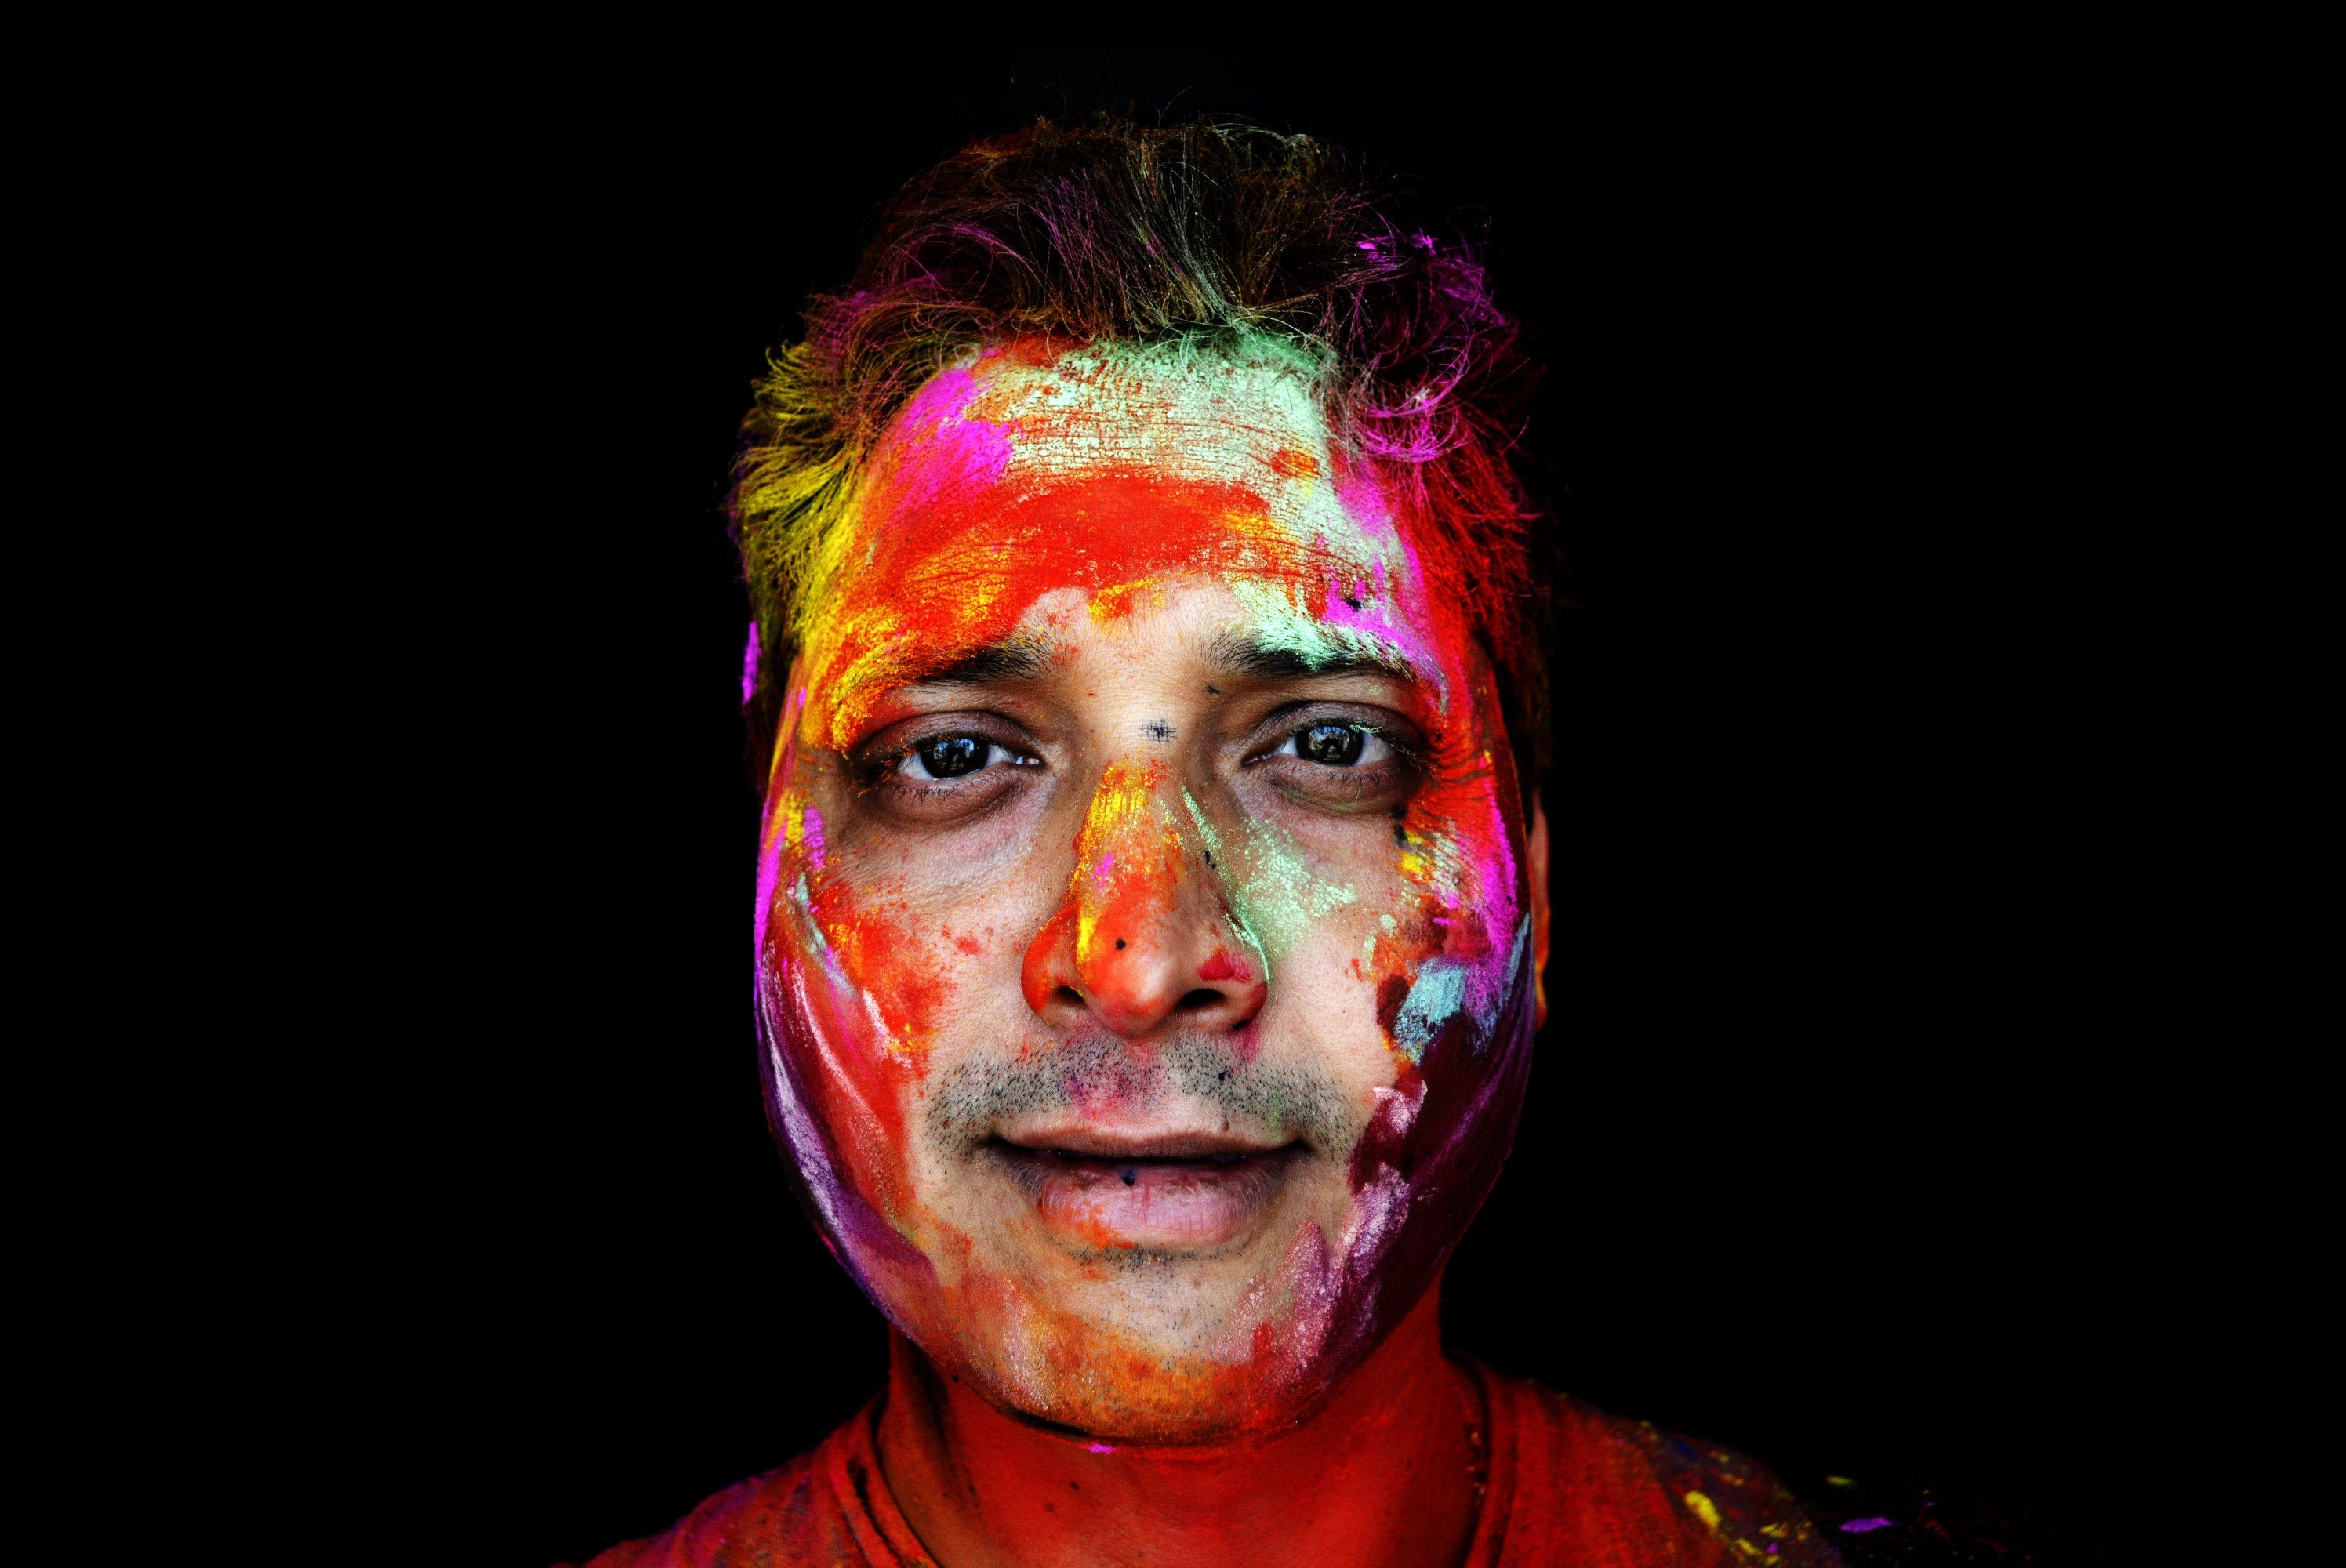 Portrait Of Man With Face Paint